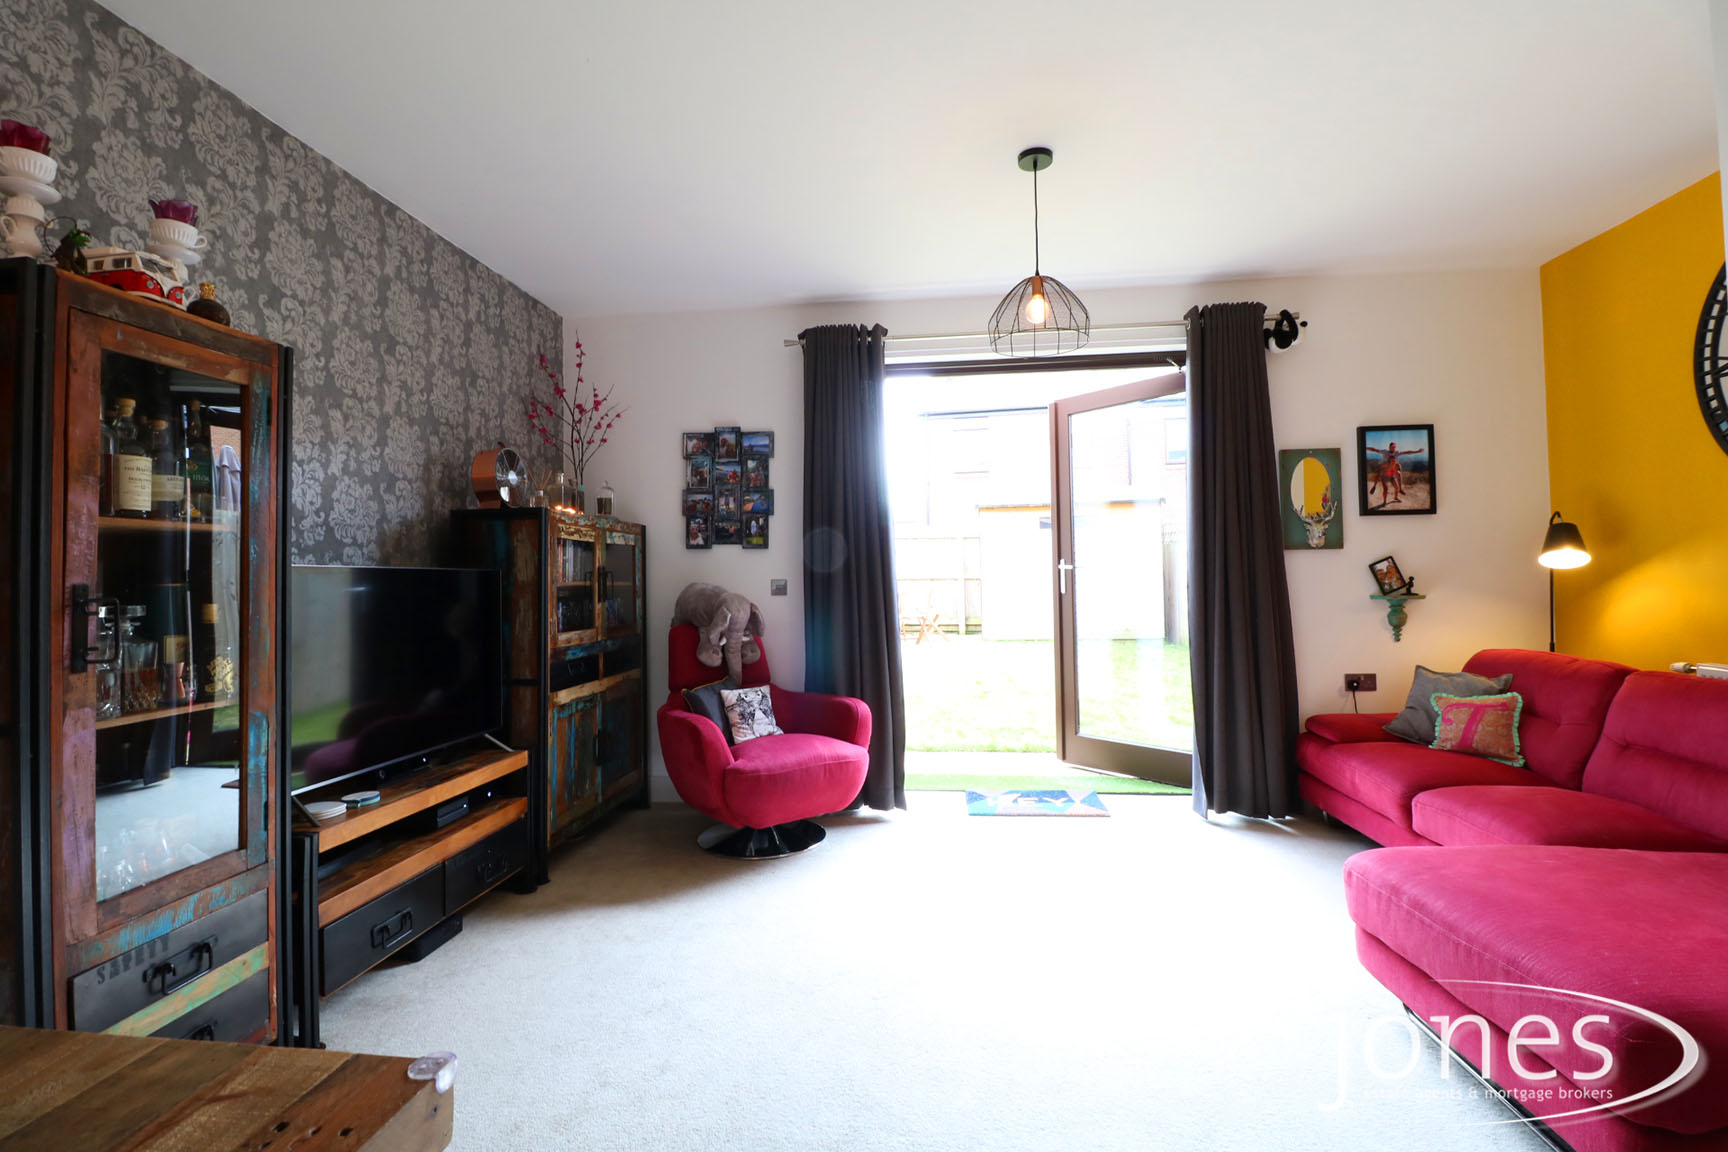 Home for Sale Let - Photo 02 Brookby Court, ,Stockton on Tees,TS18 2SX